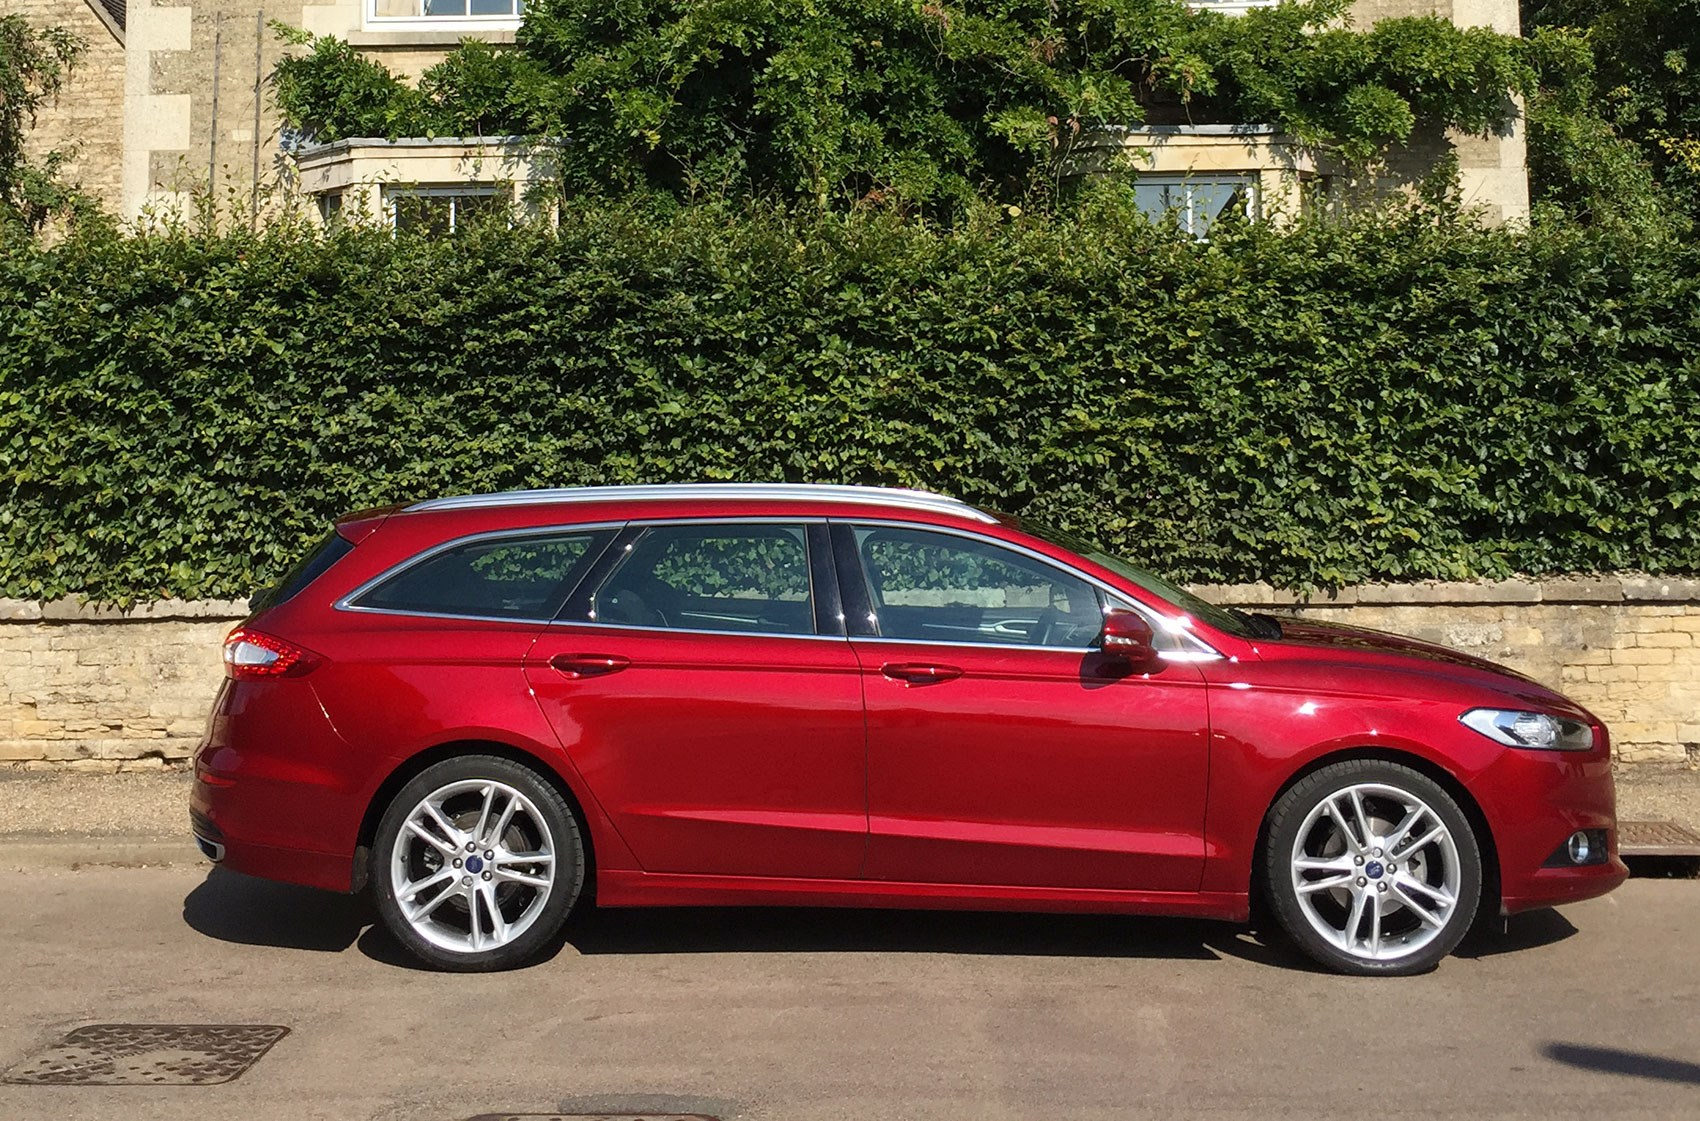 Optional 19s screw your mpg but improve your image. Your call! & We like red but weu0027re on our own Our Cars Ford Mondeo CAR+ ... markmcfarlin.com